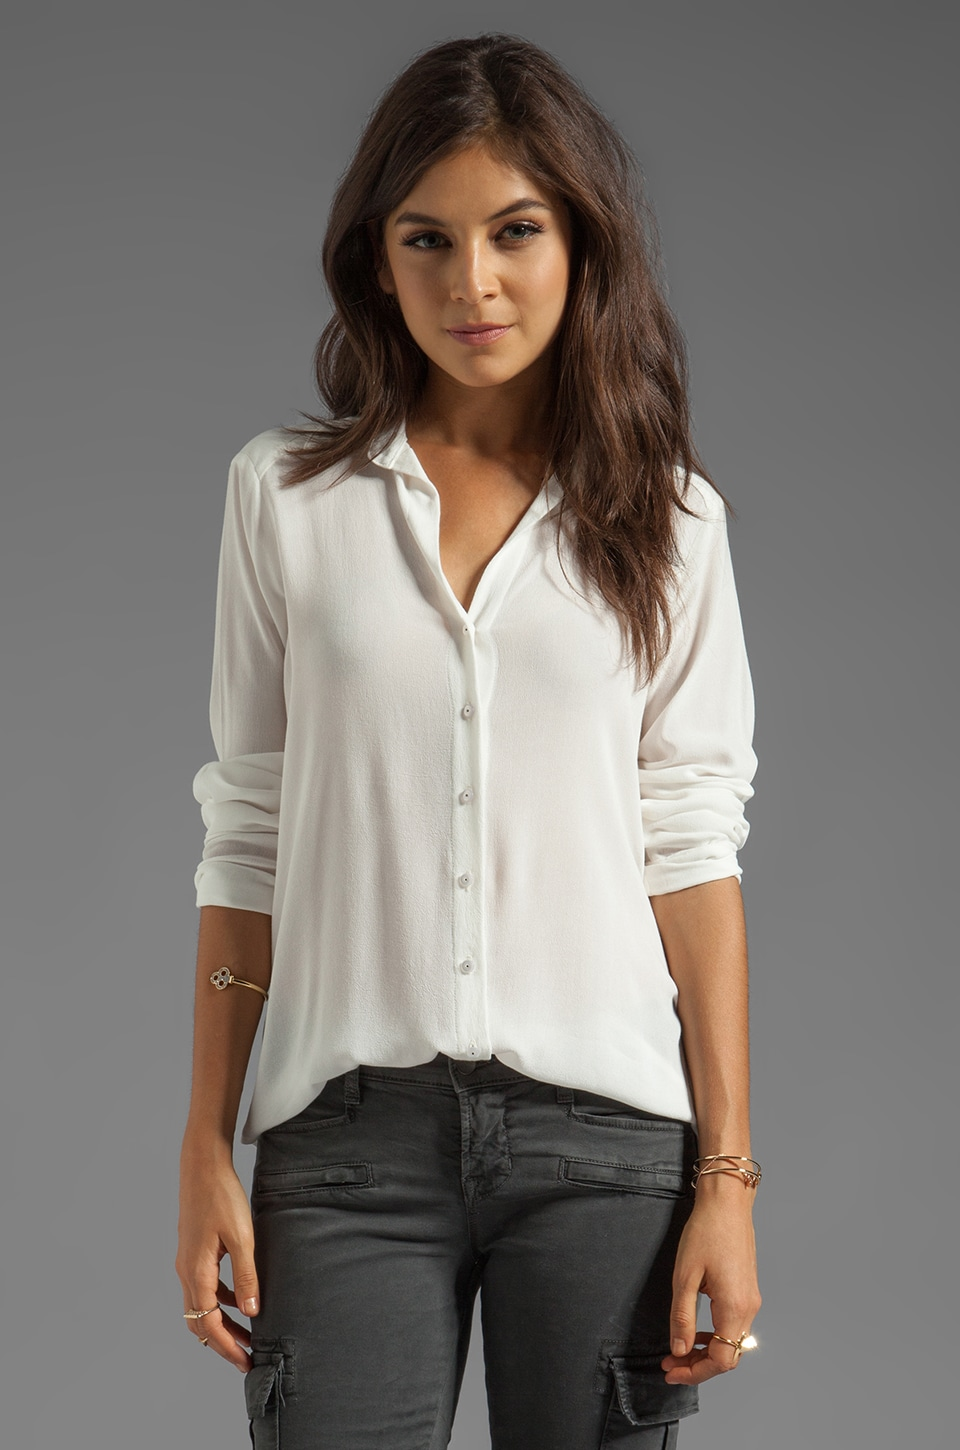 Ella Moss Waverly Blouse in Natural